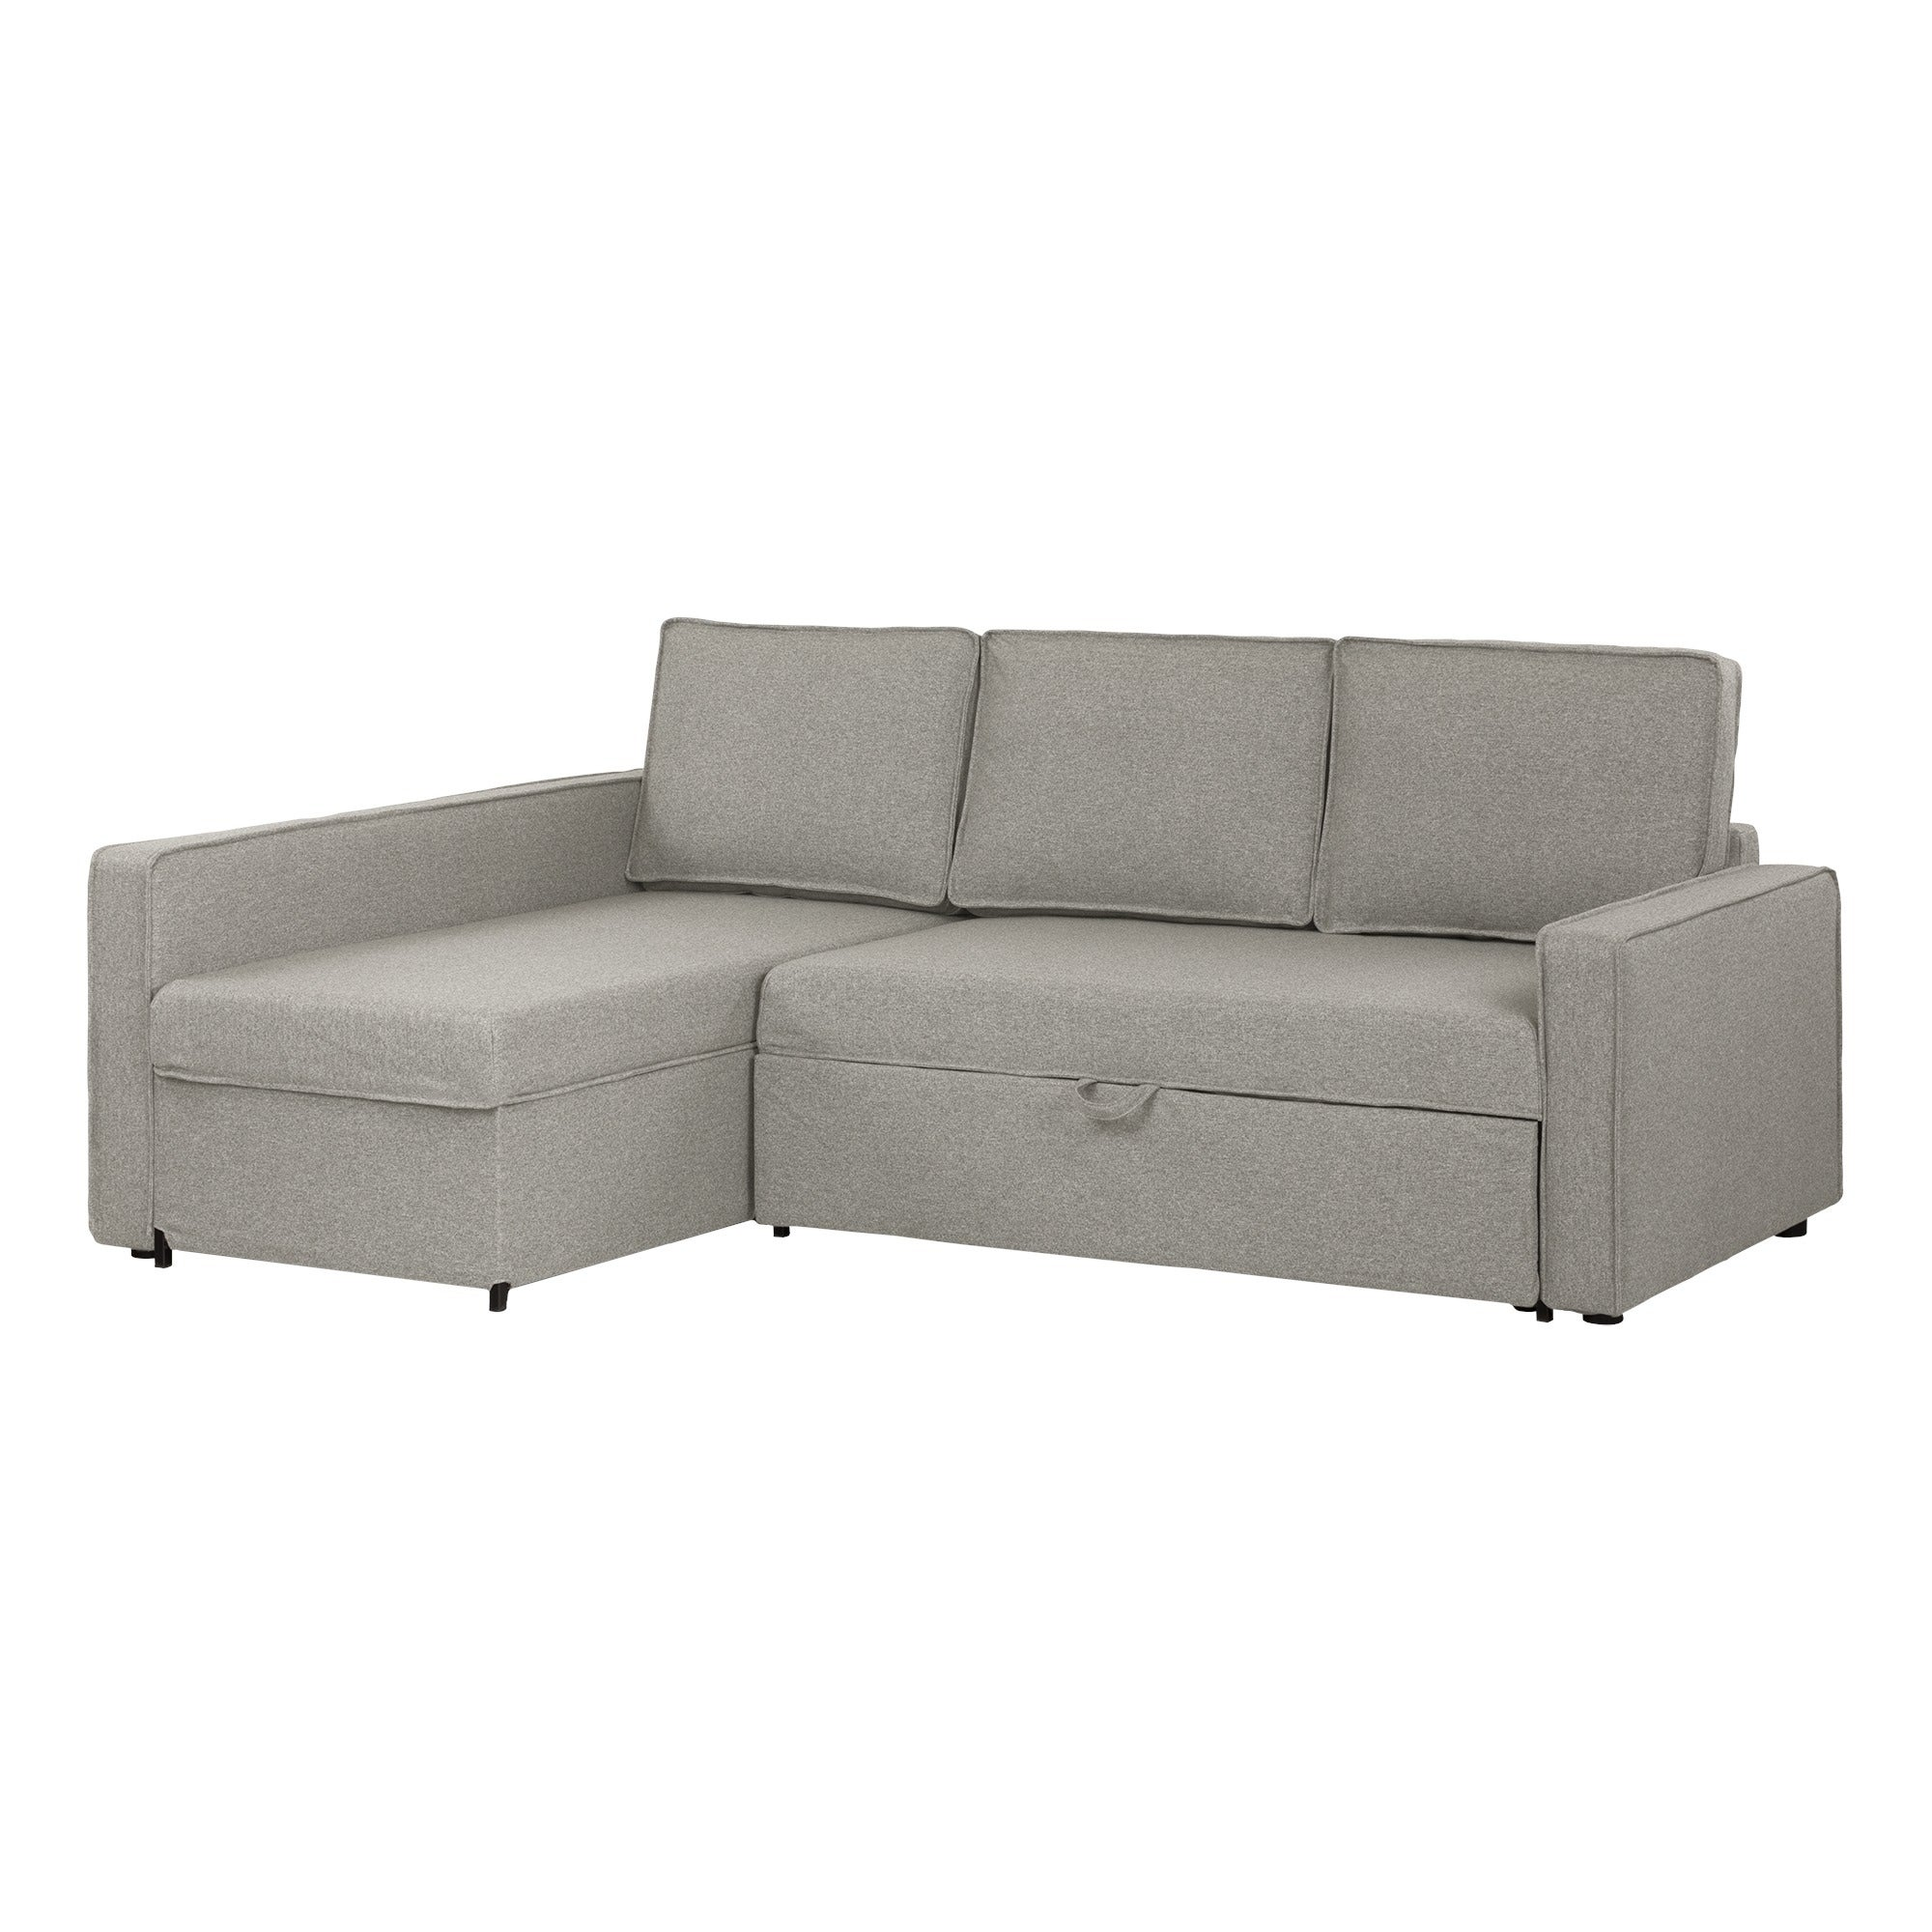 Shop South Shore Live It Cozy Sectional Sofa Bed With Storage Free